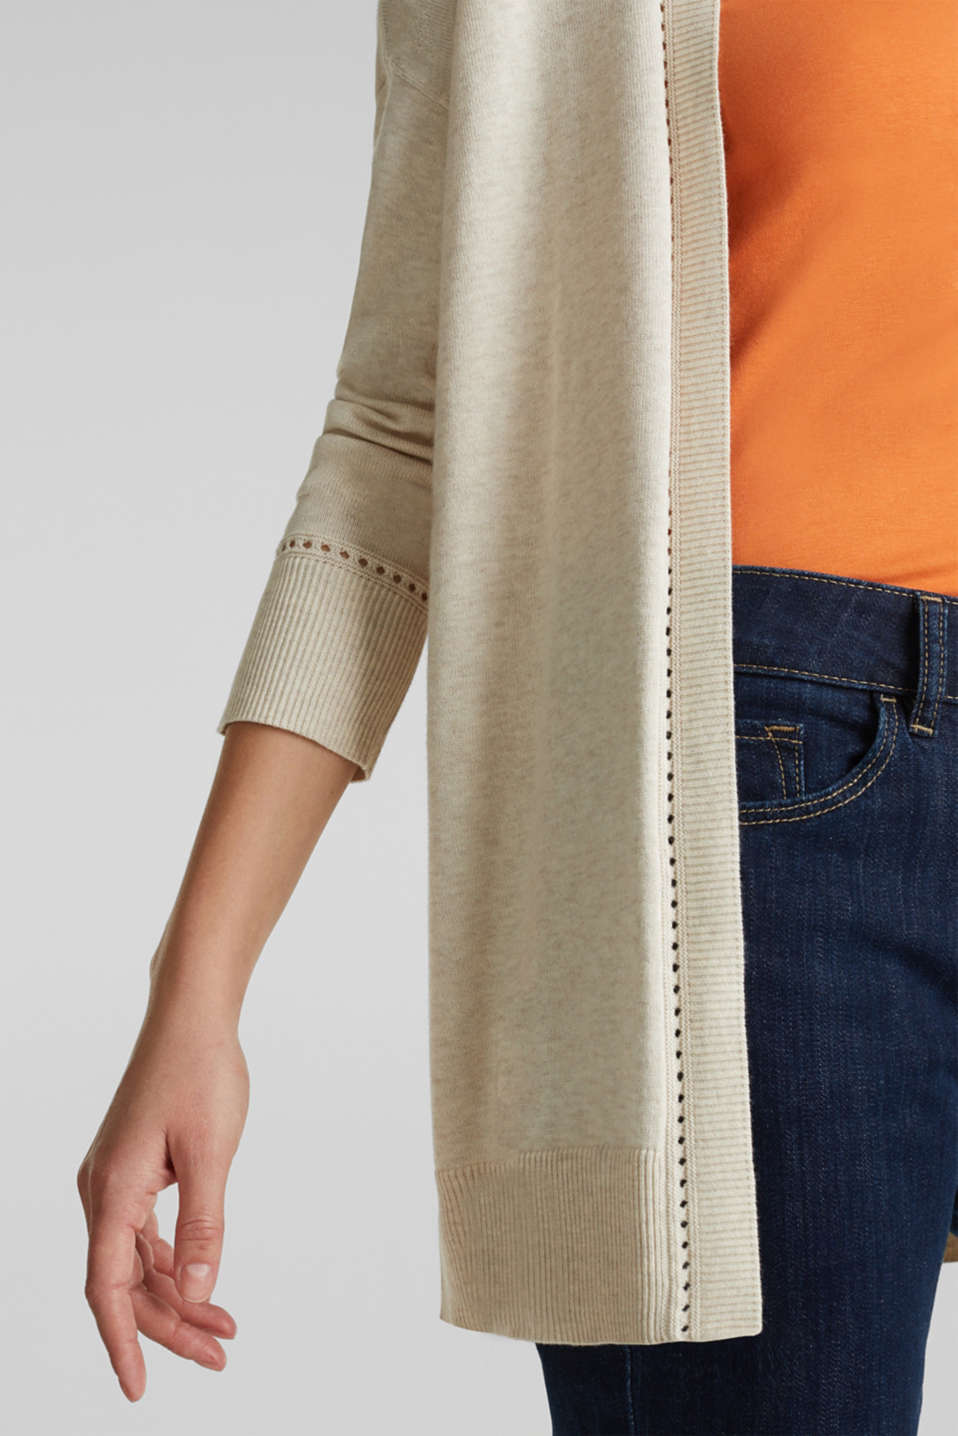 Cardigan with open-work pattern details, SAND, detail image number 5